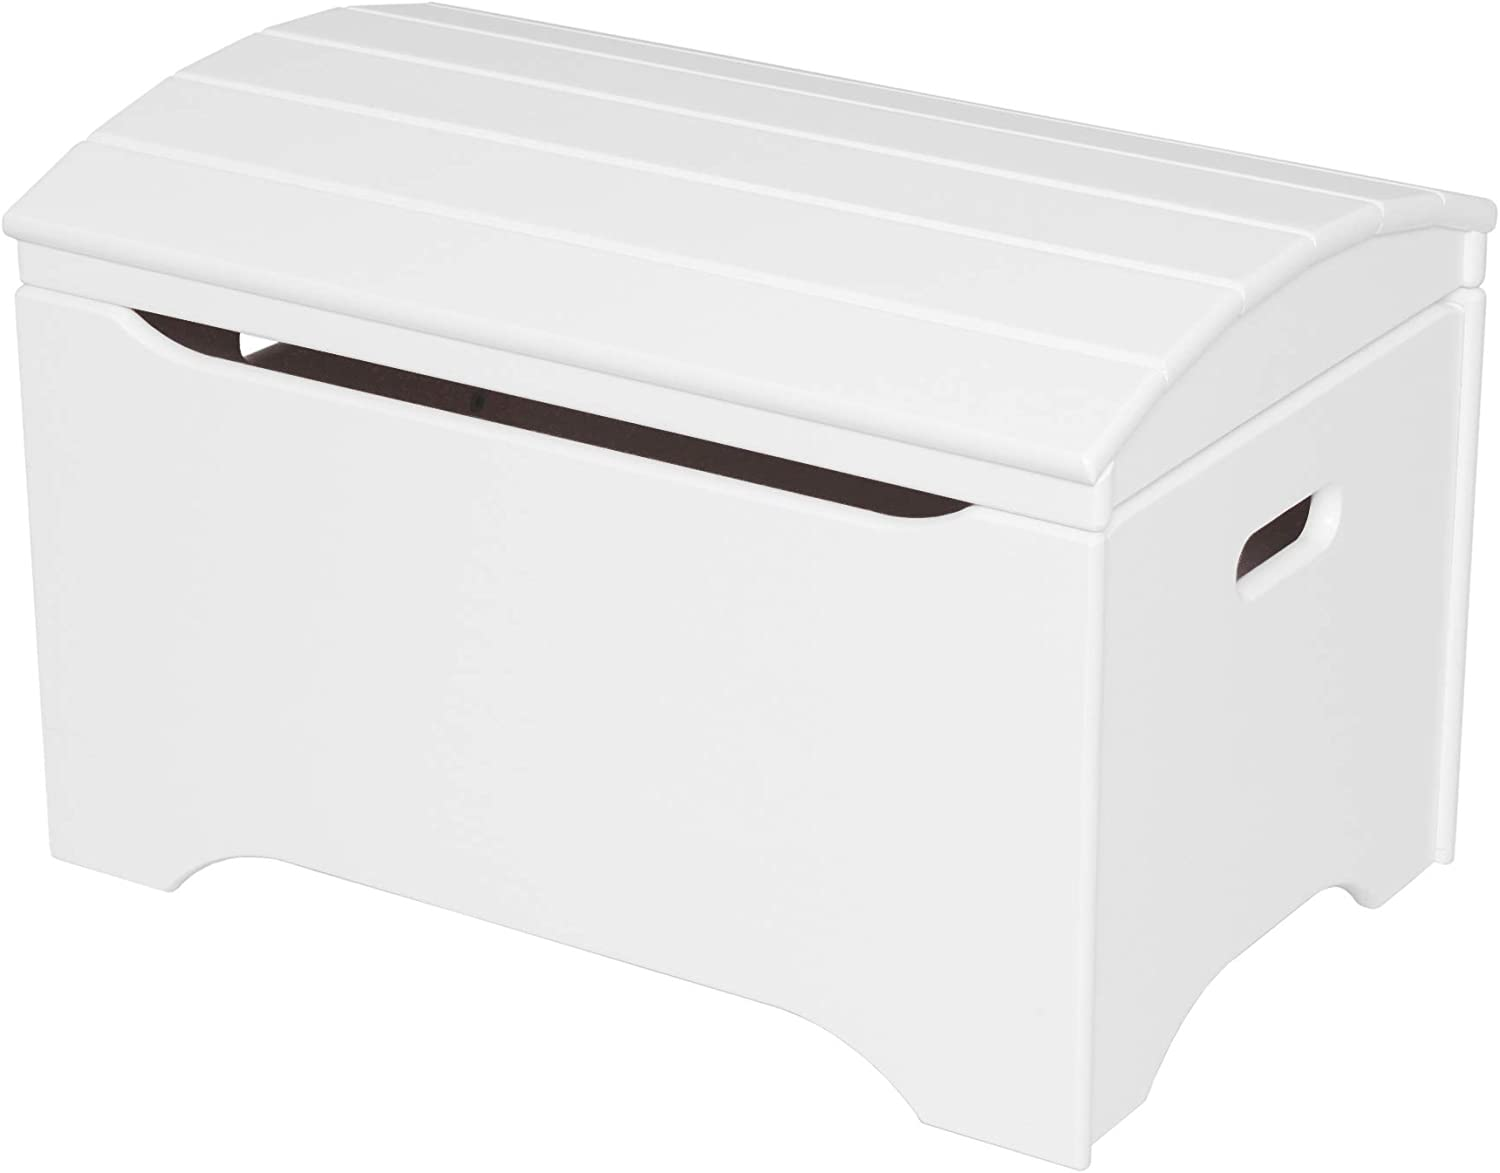 Sturdy Little Colorado Treasure Toy Chest Wooden Toy Chest for Kids//No Assembly Needed//Handcrafted in The USA Solid White